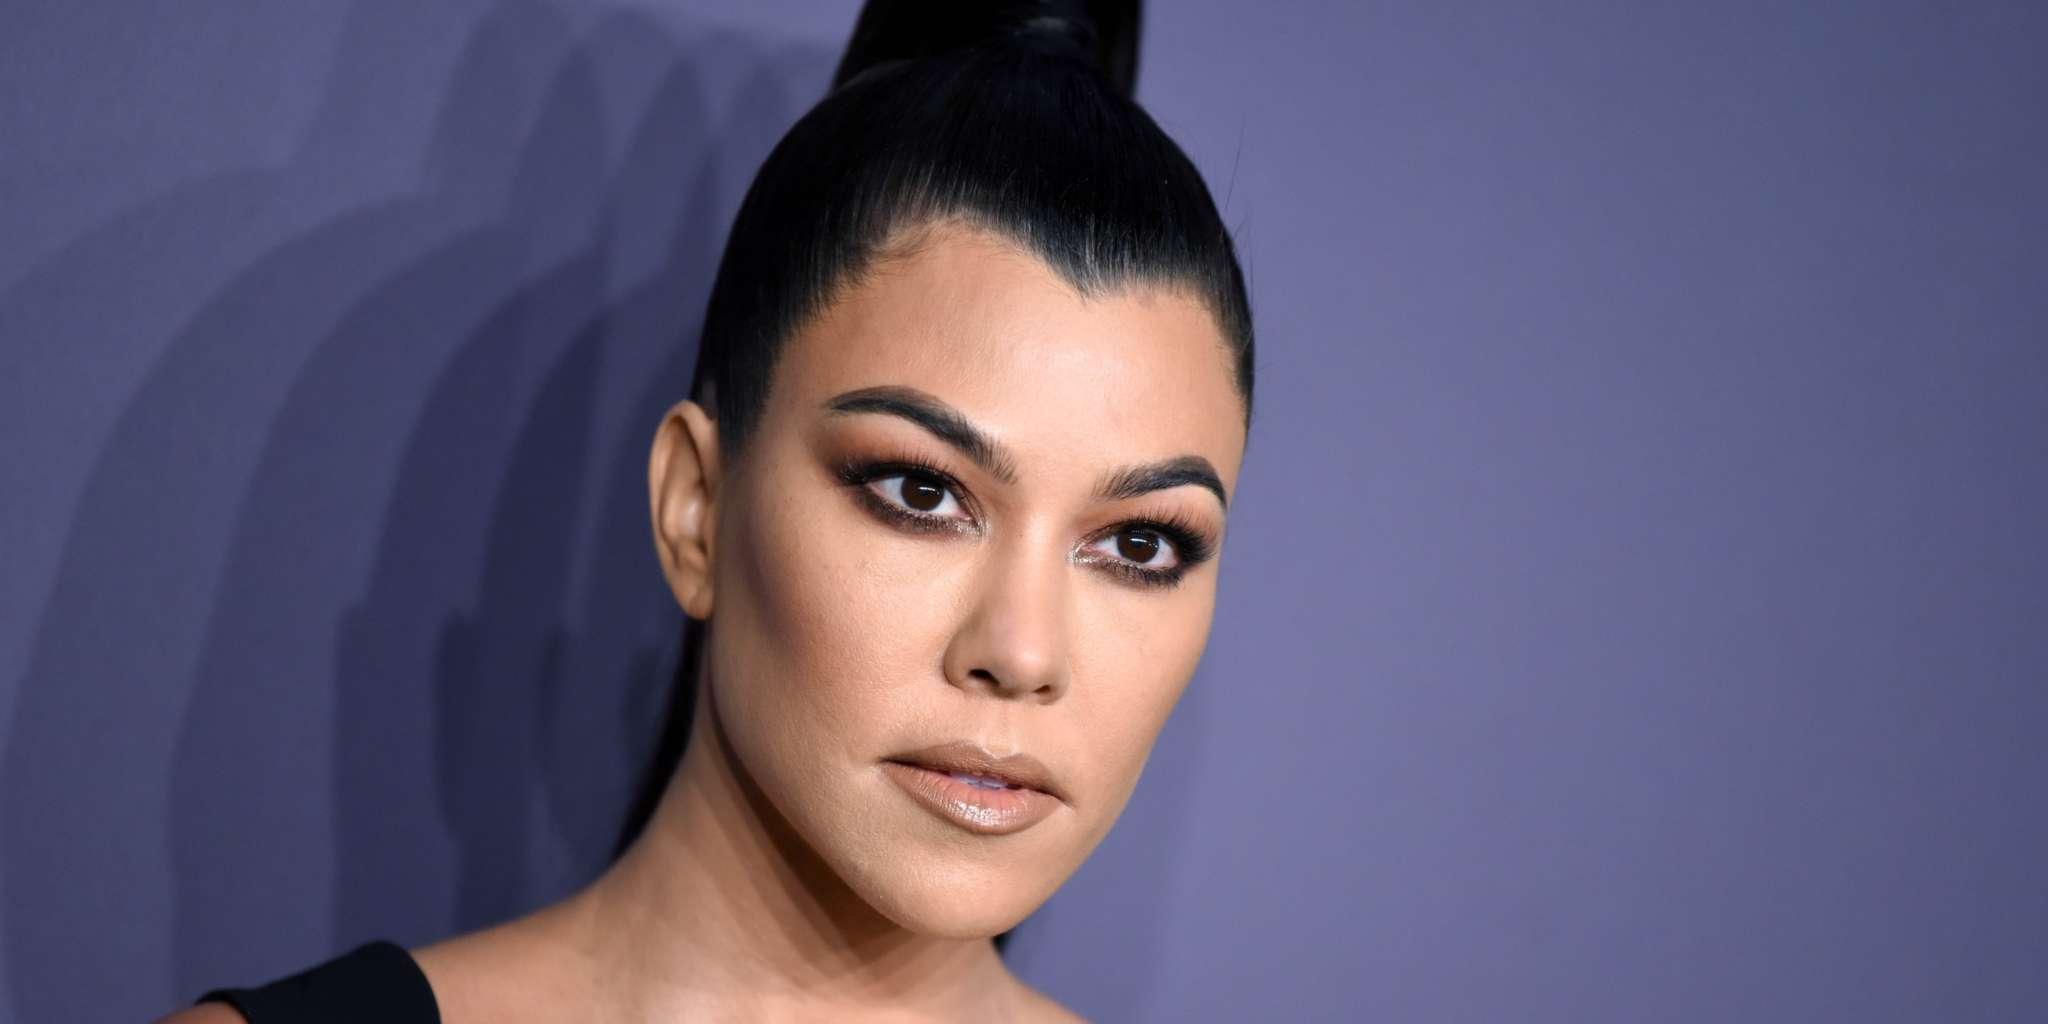 KUWK: Kourtney Kardashian Says She Loves Her Curvier Body After Putting On A Bit Of Weight In Quarantine - 'I'm Proud Of It!'